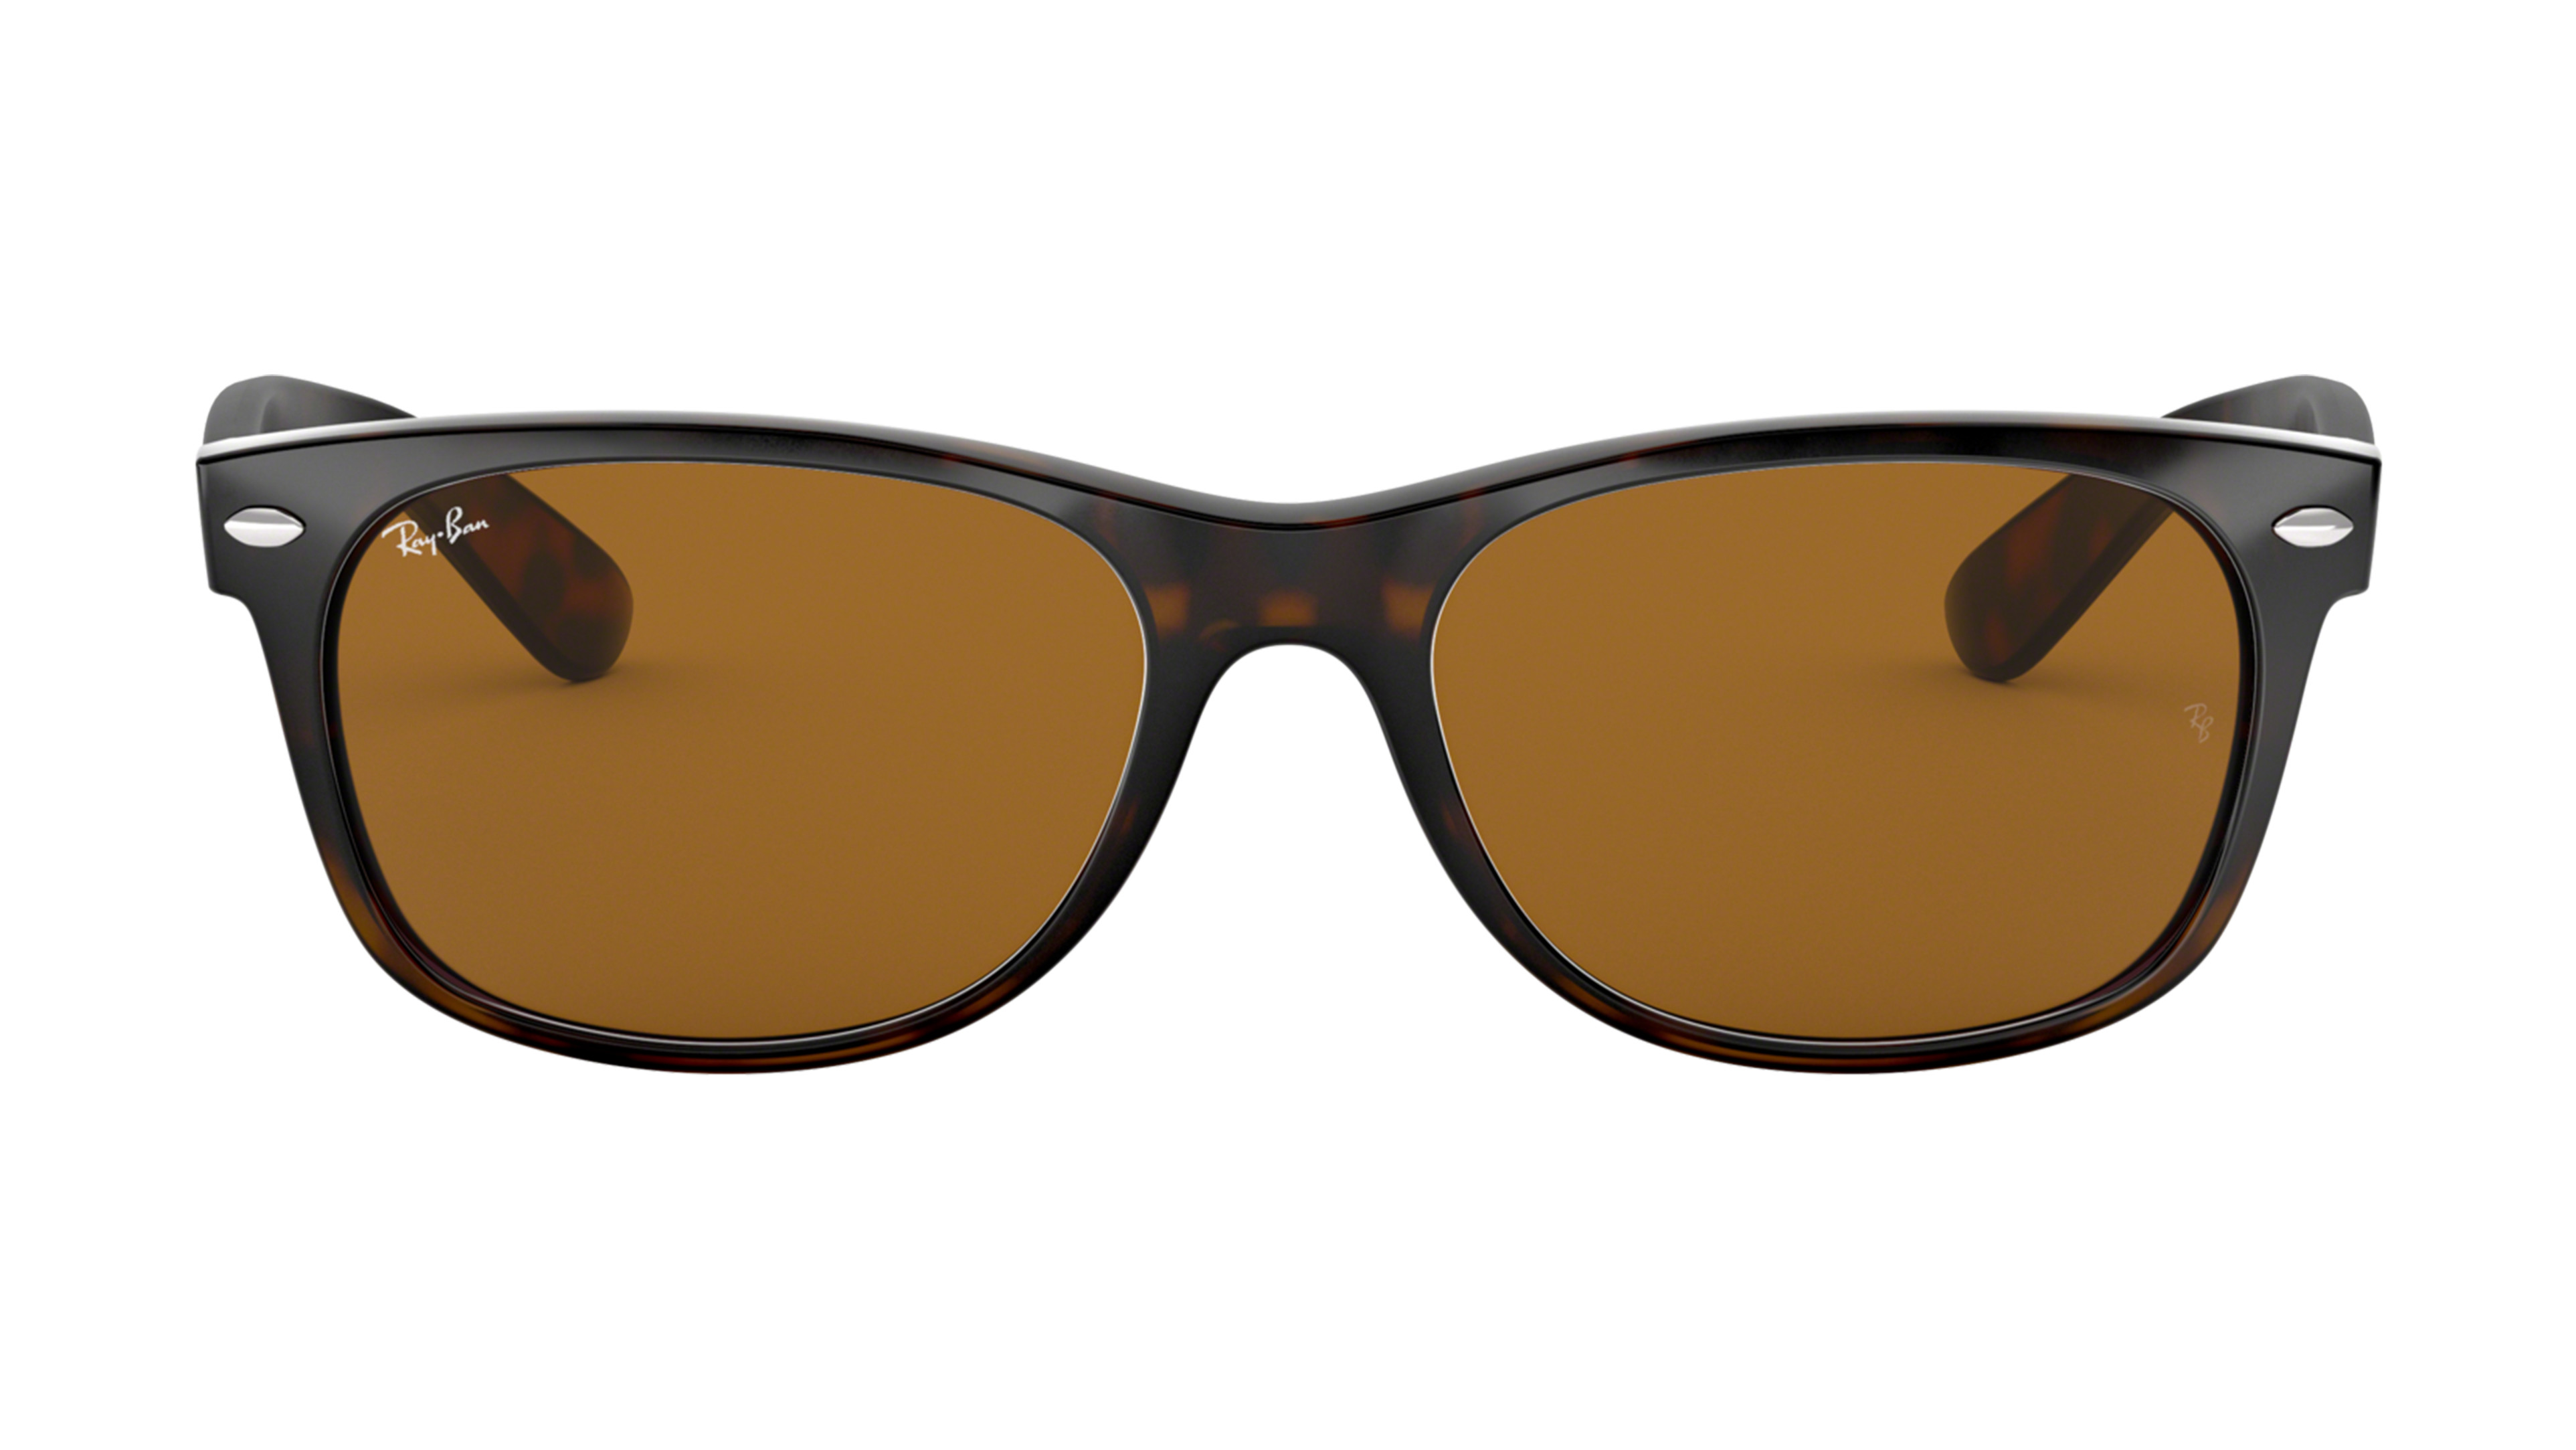 8053672562293-front-Ray-Ban-0RB2132-710